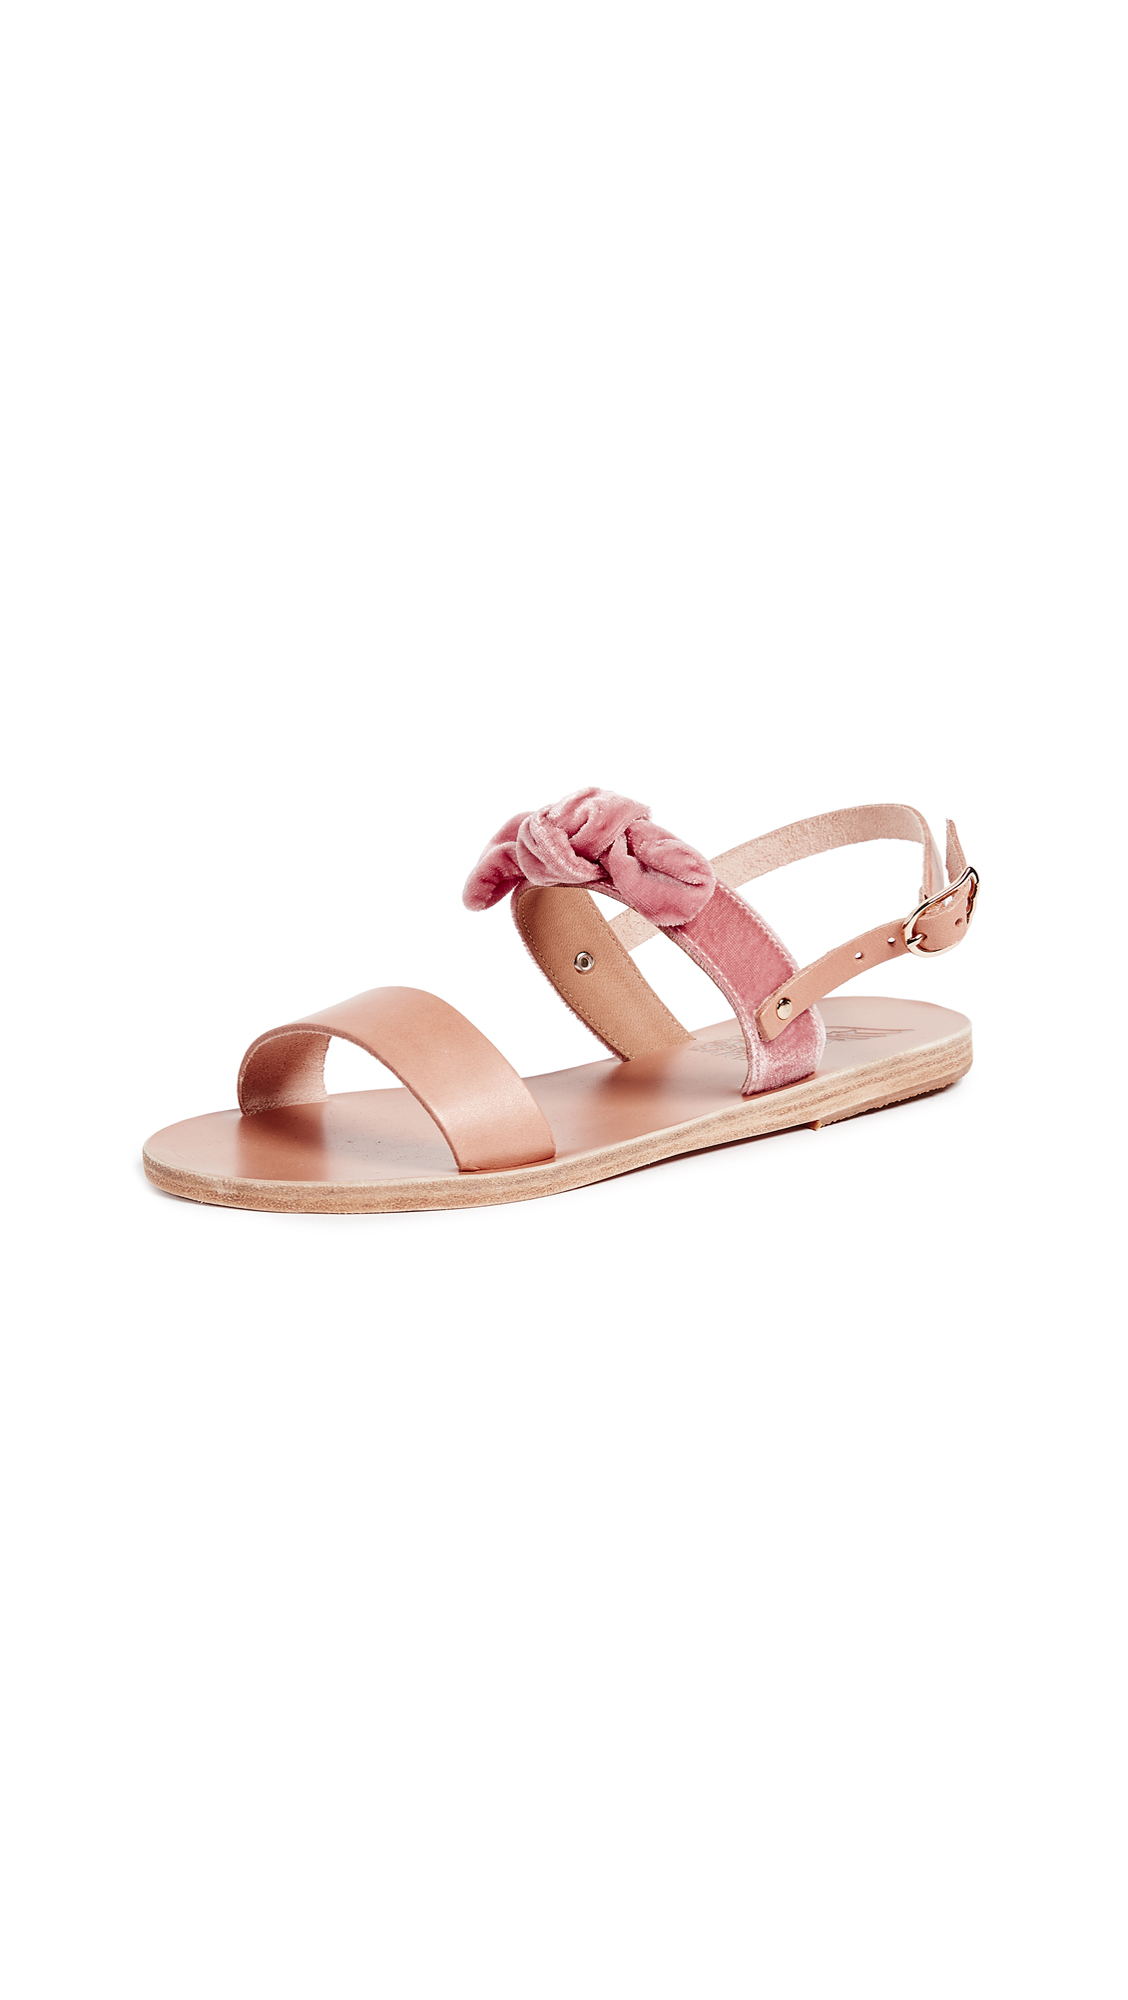 Ancient Greek Sandals Clio Bow Sandals - Natural/Dusty Rose